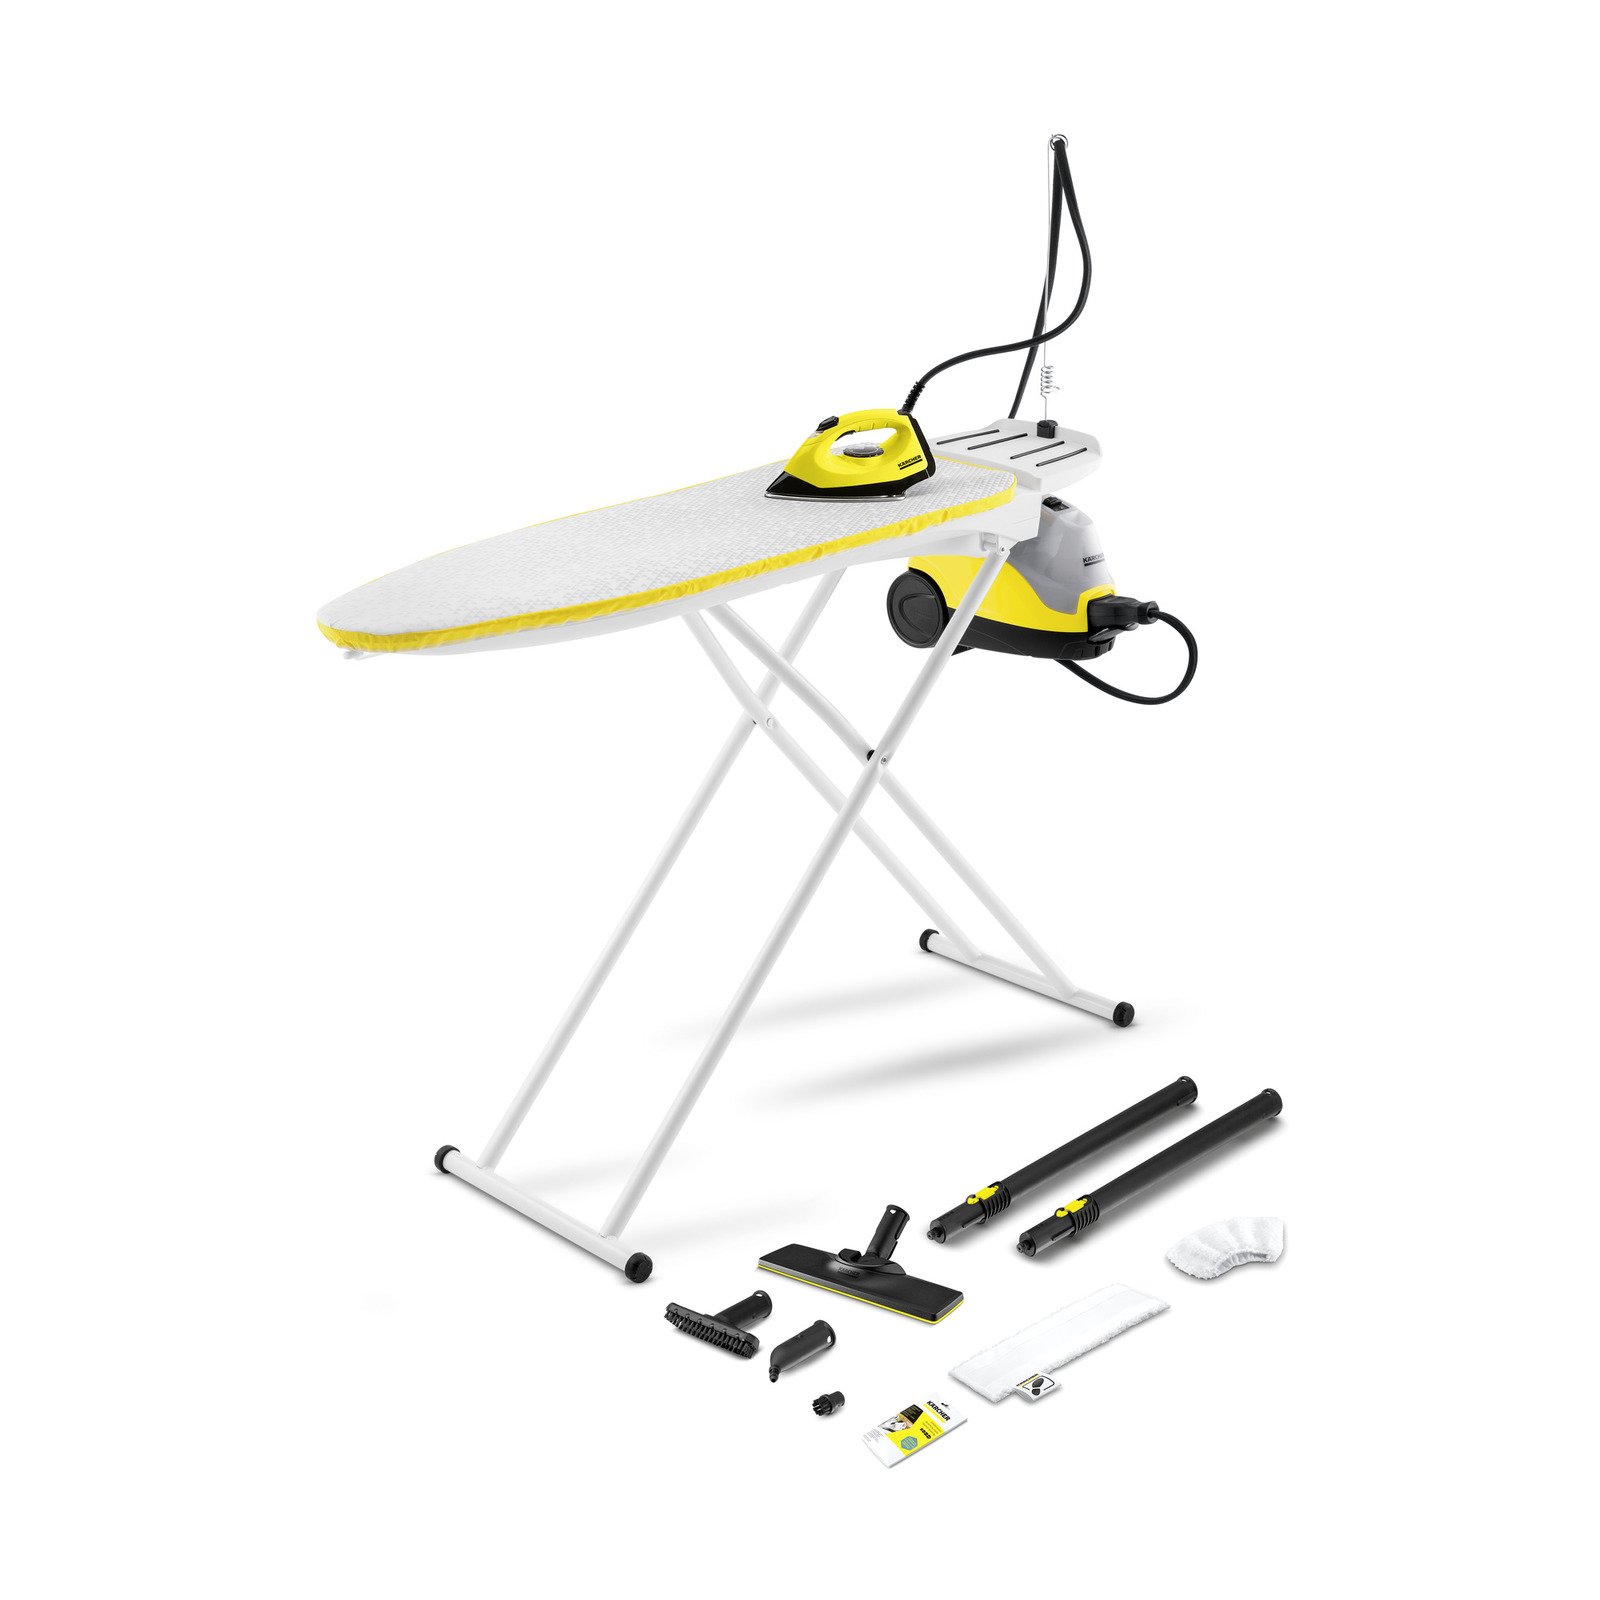 SI 4 EasyFix (yellow) Iron Kit *EU